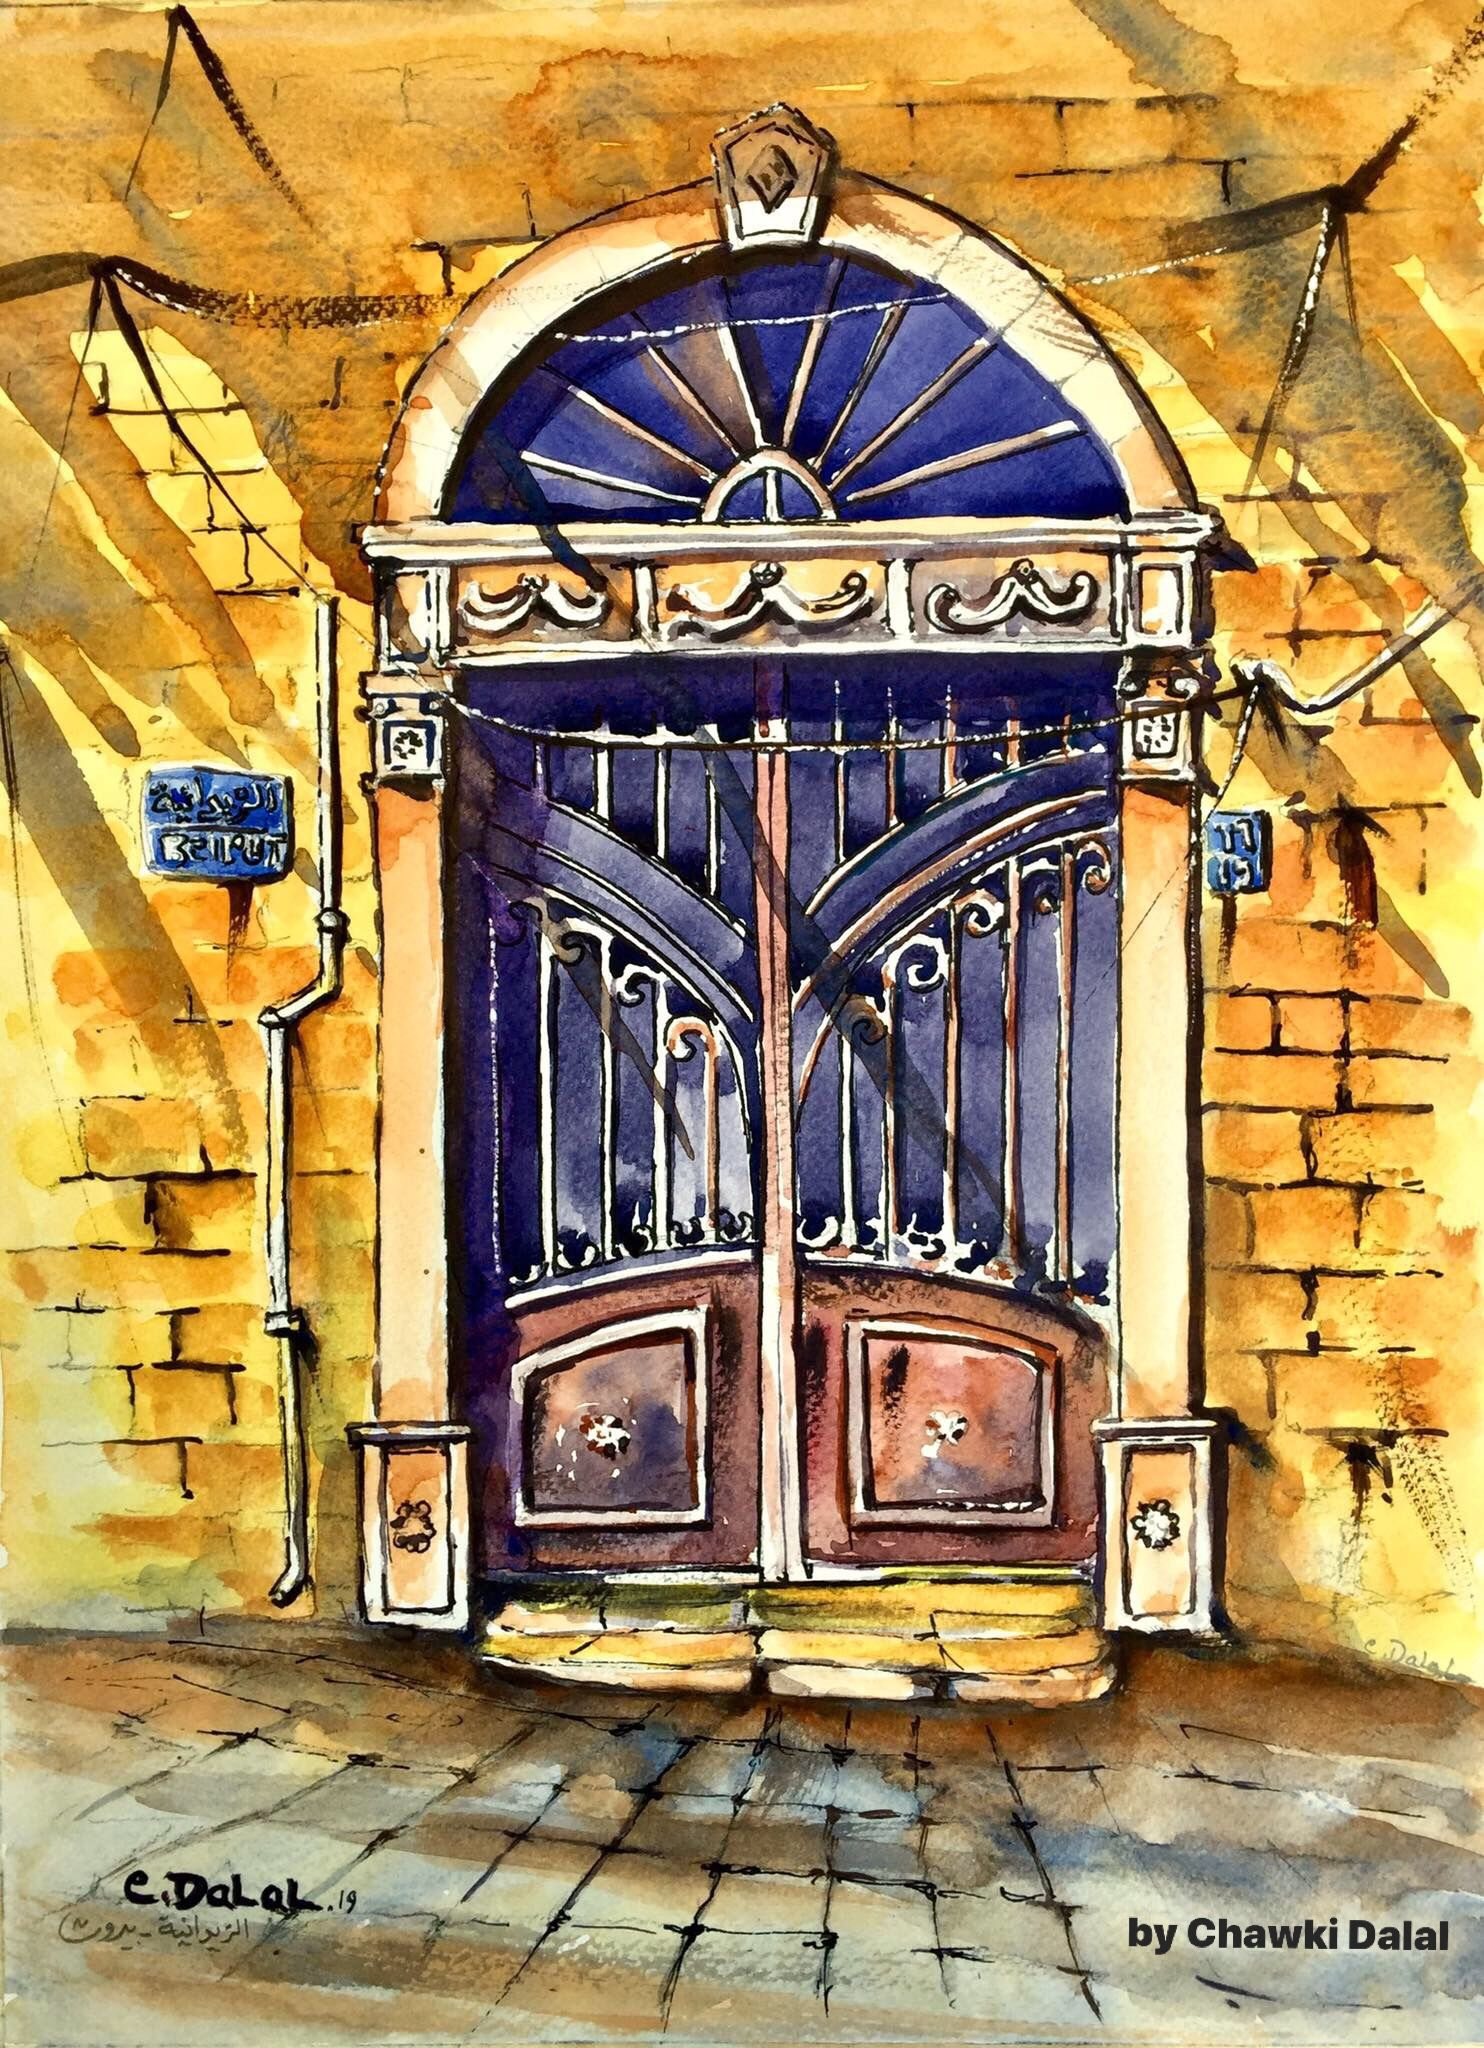 Watercolor Painting By Chawki Dalal For A Heritage Door In Alzaydaniye Area In Beirut Lebanon لوحة مائية بريشتي لباب تراثي في منطقة الز Decor Home Decor Art